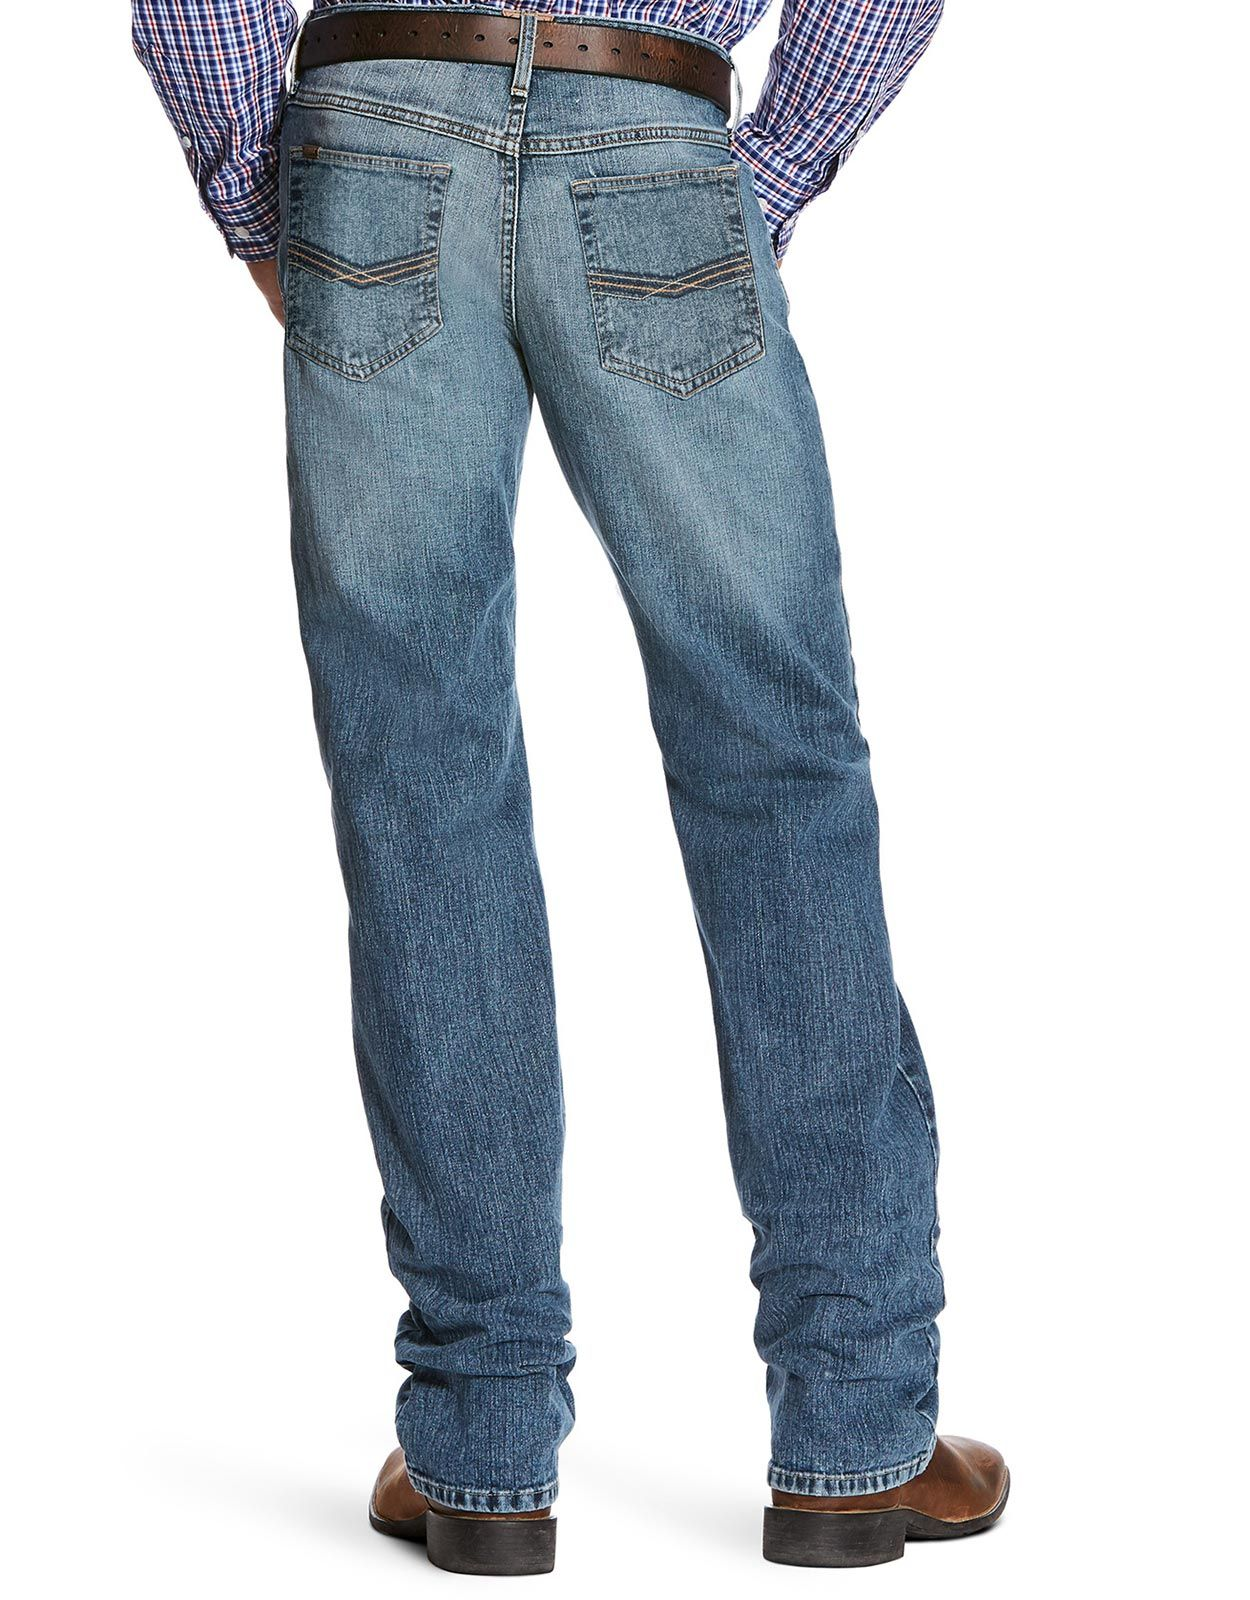 Ariat Men's M5 Legacy Stretch Low Rise Slim Fit Stackable Straight Leg Jeans - Drifter